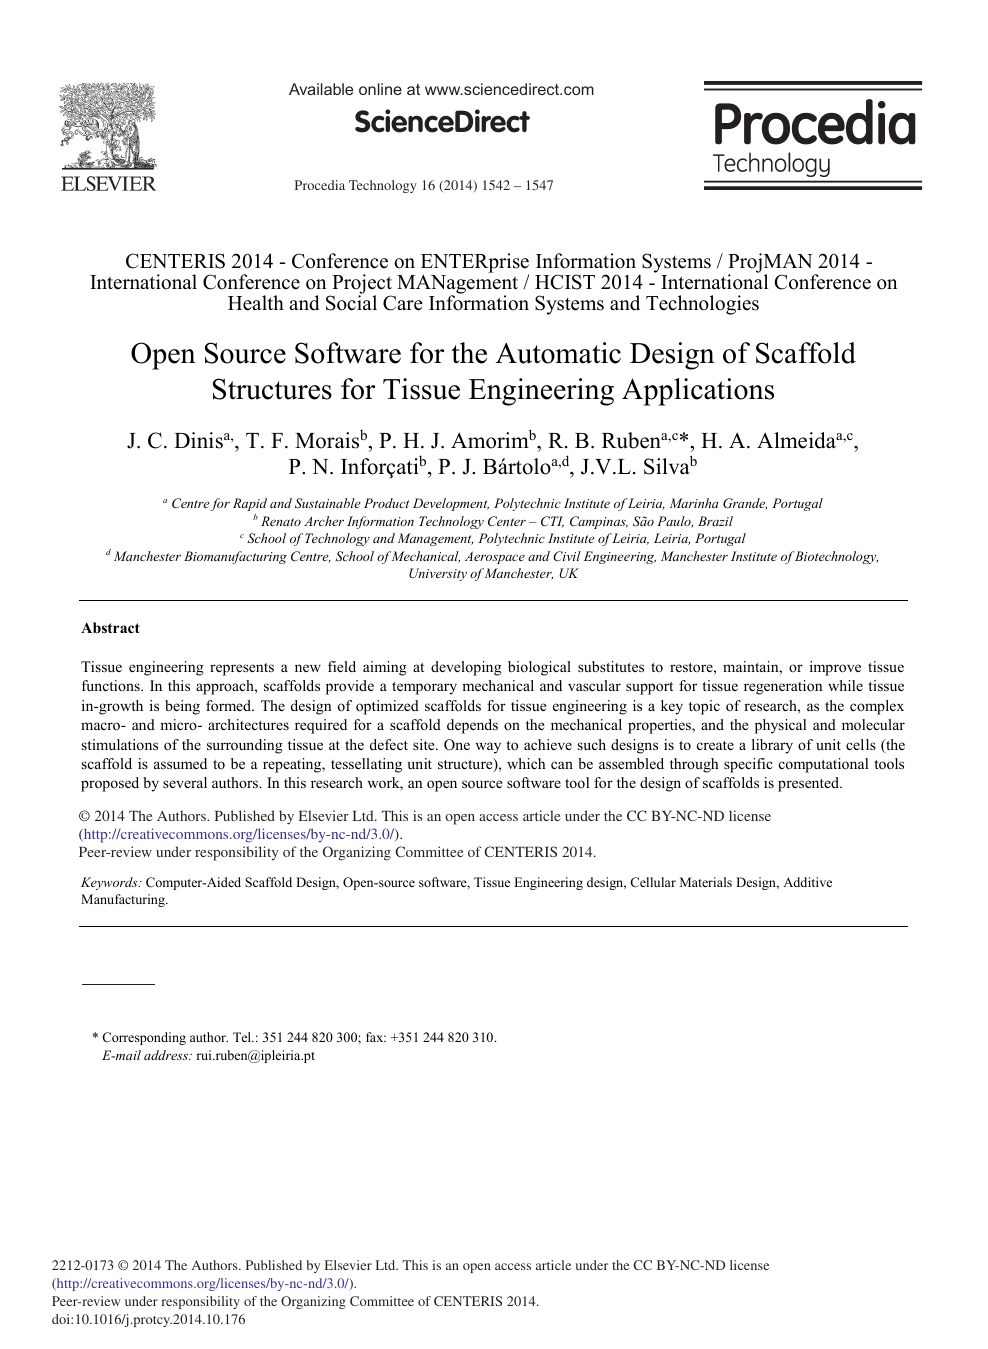 Open Source Software for the Automatic Design of Scaffold Structures